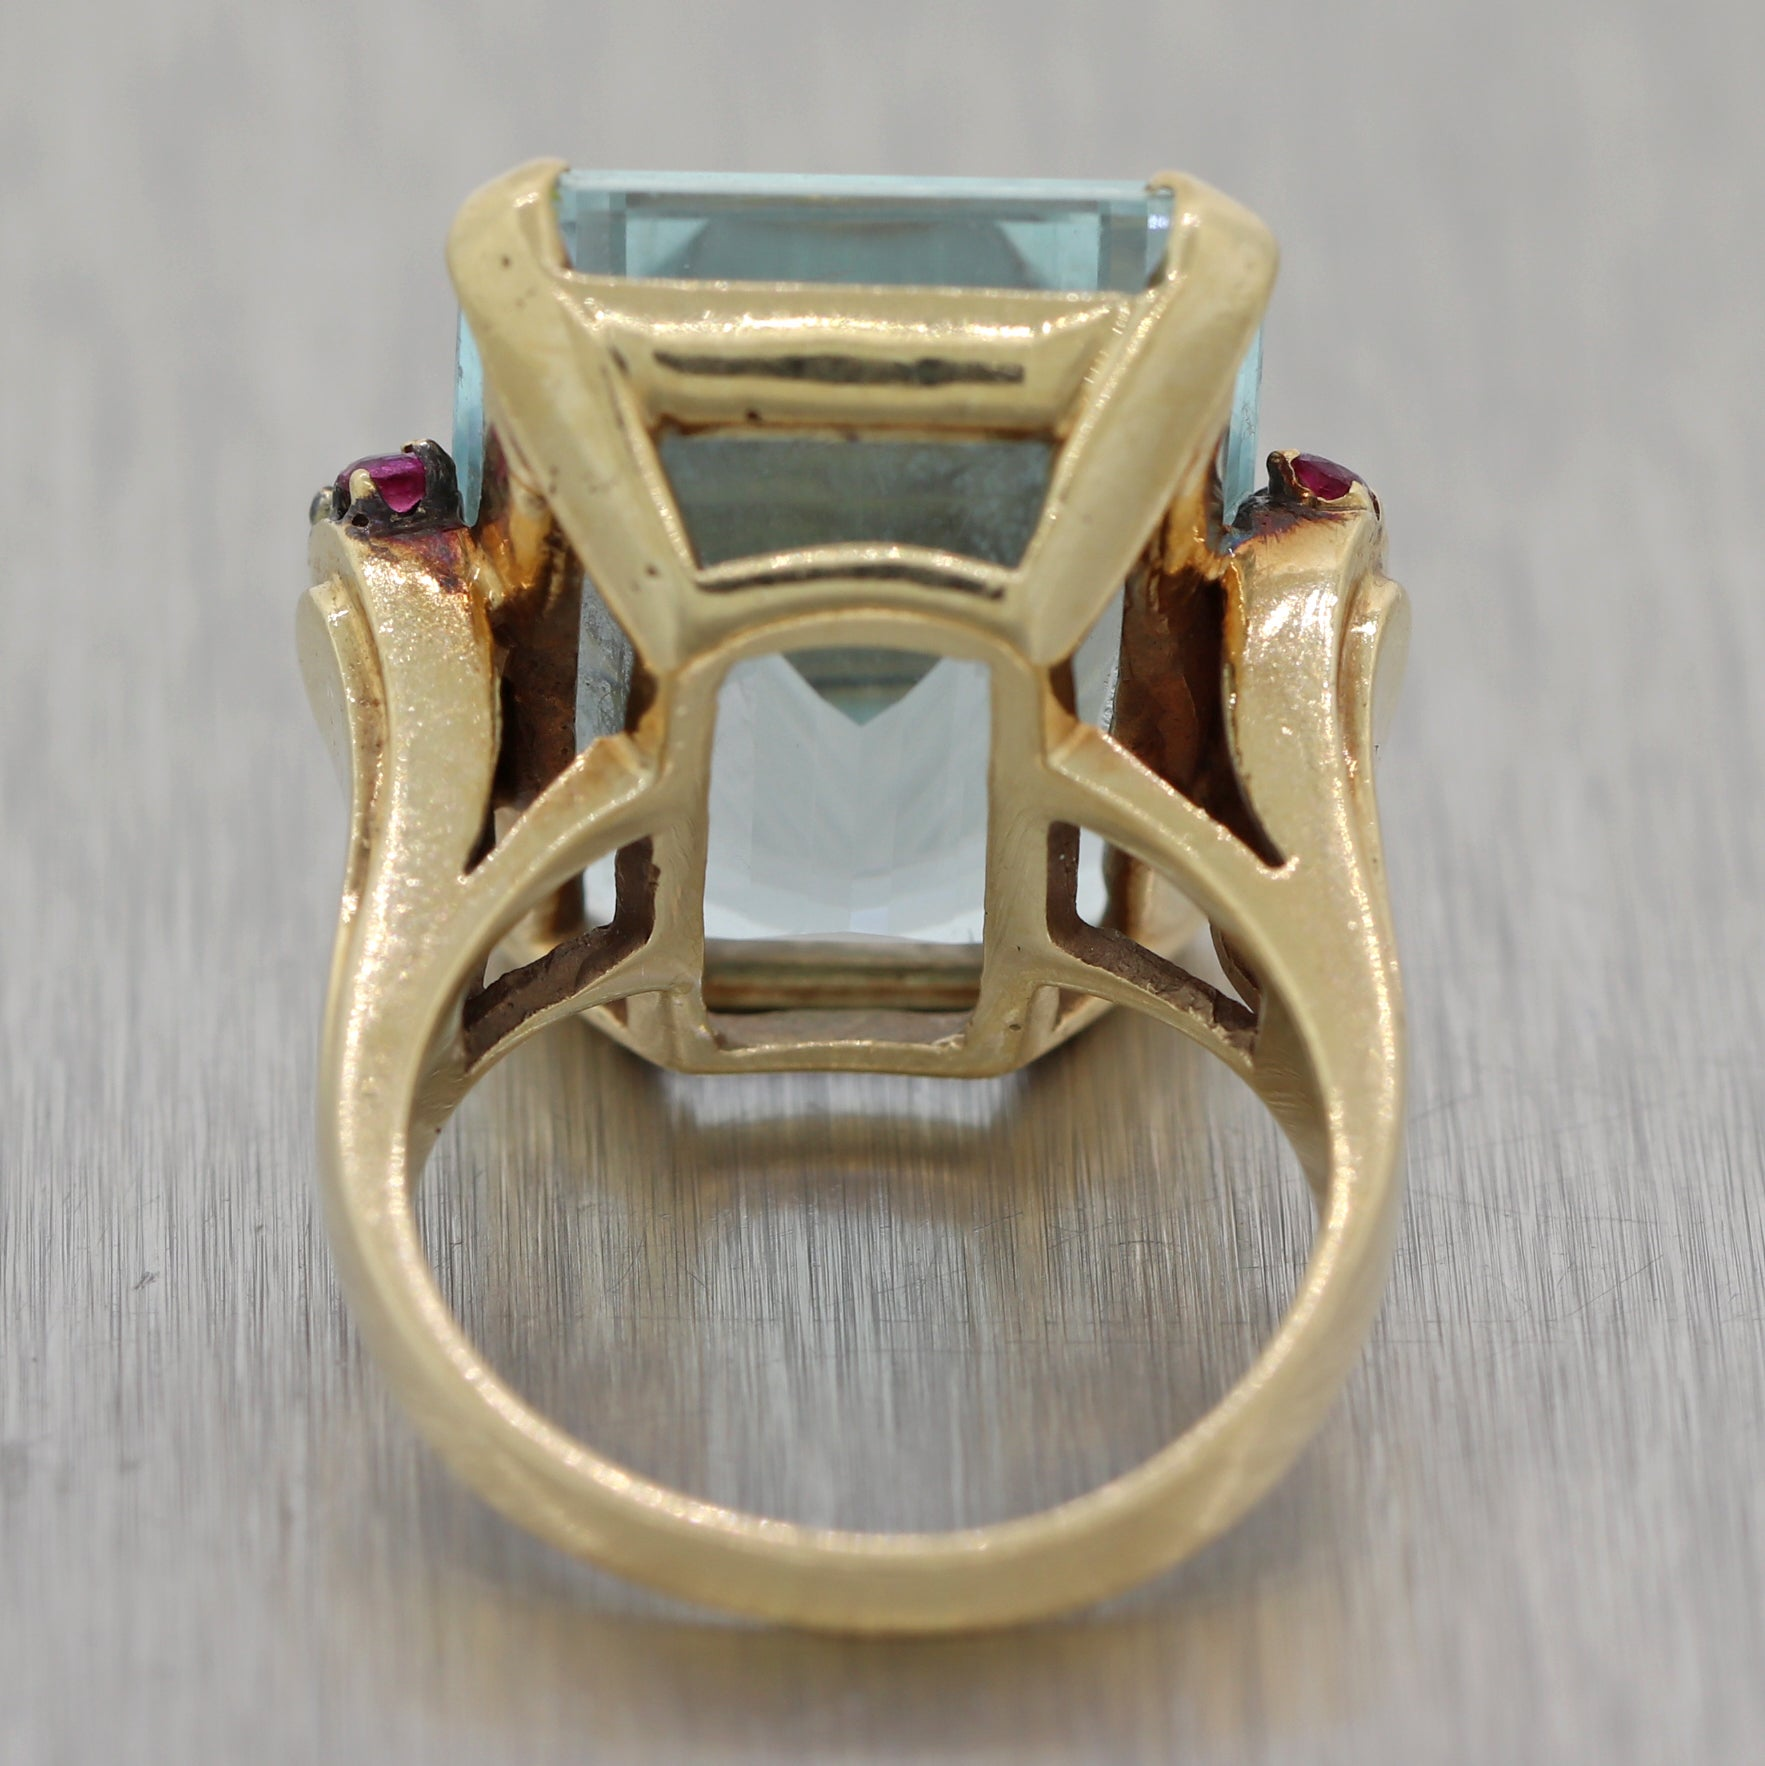 1940's Vintage Estate 14k Yellow Gold 25ct Aquamarine & Ruby Cocktail Ring